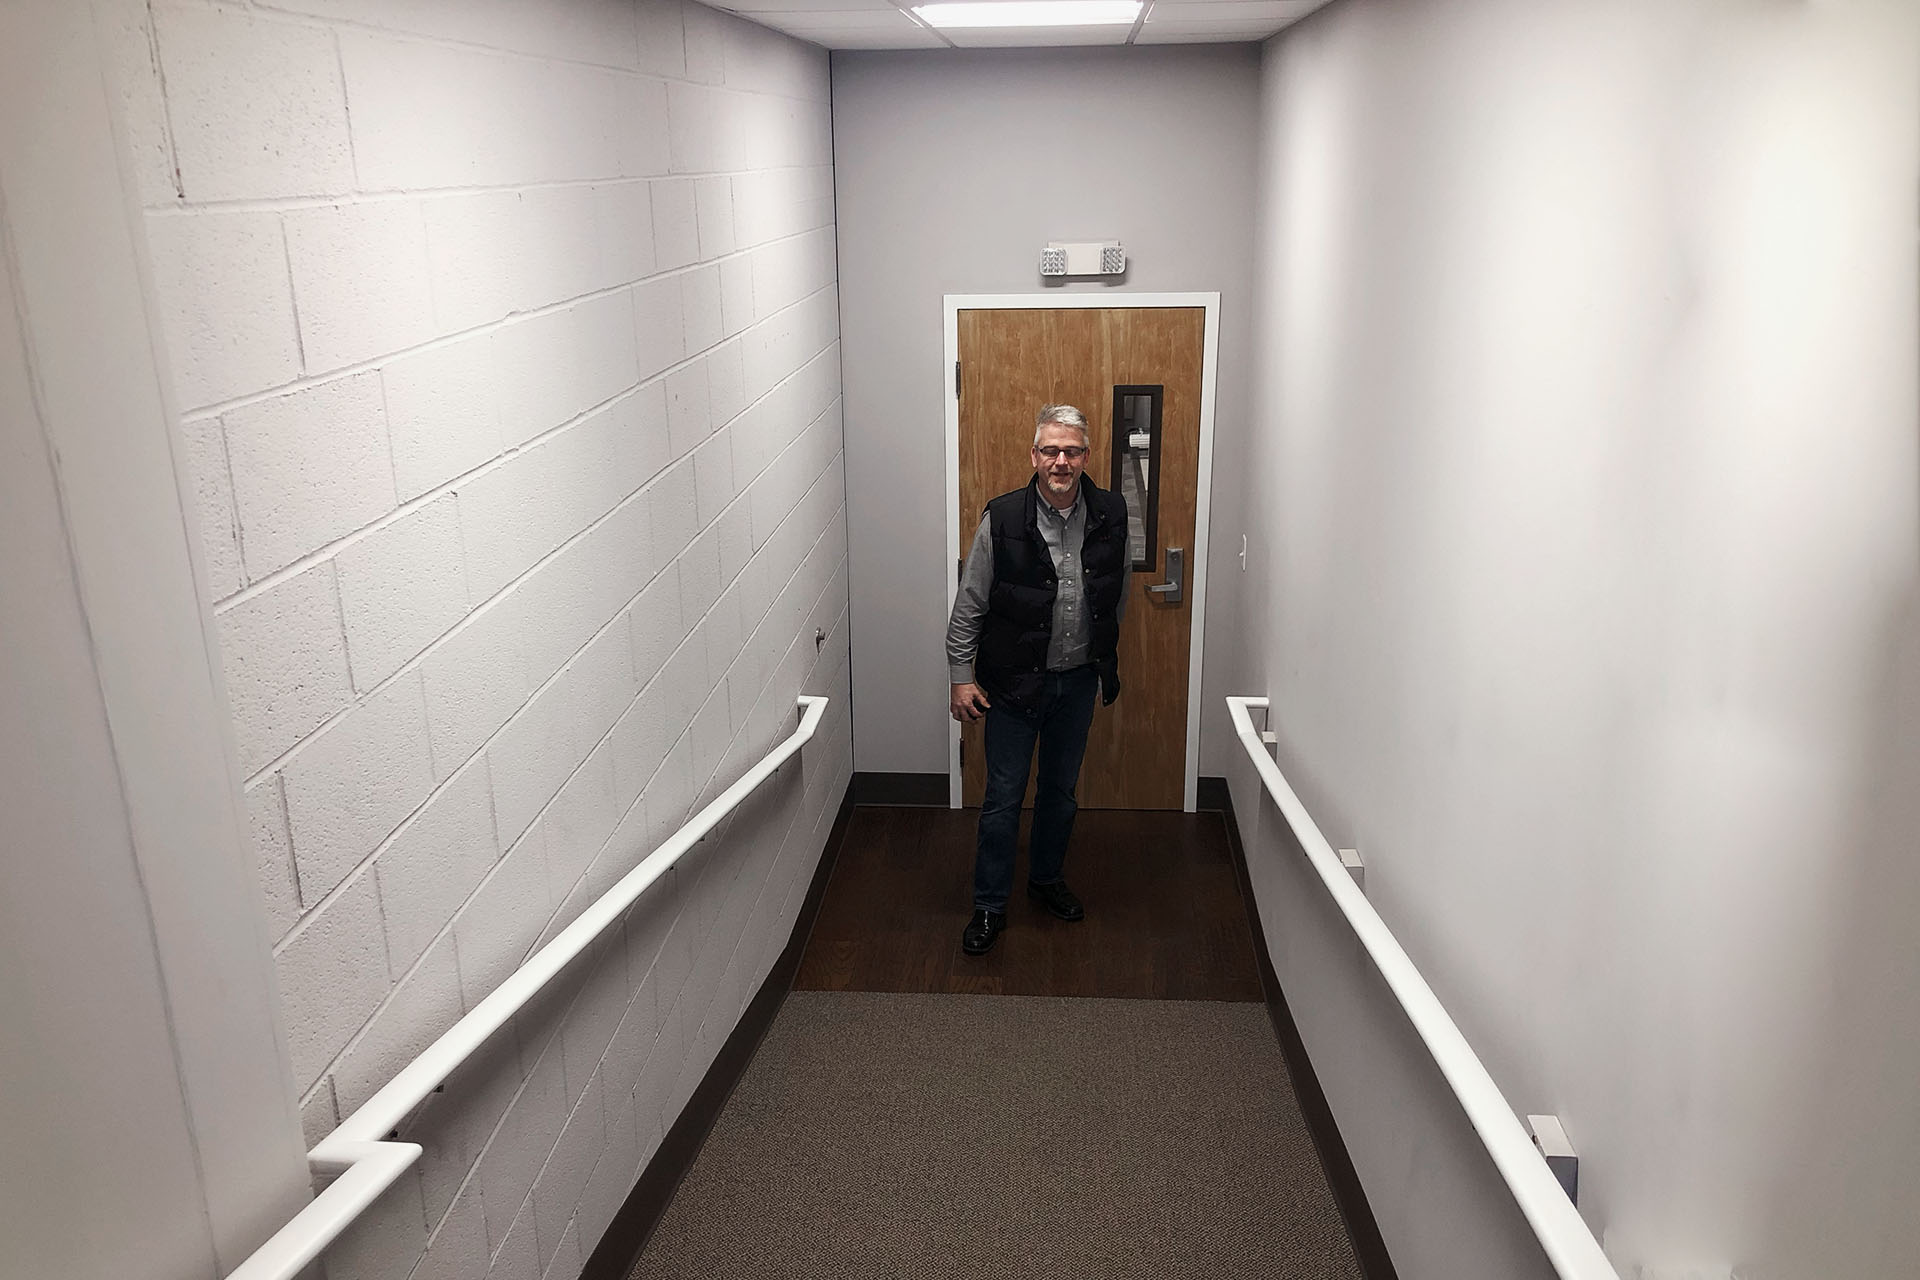 6703-2-after-derry-hallway-showroom-march-2019-dandsflooring.jpg